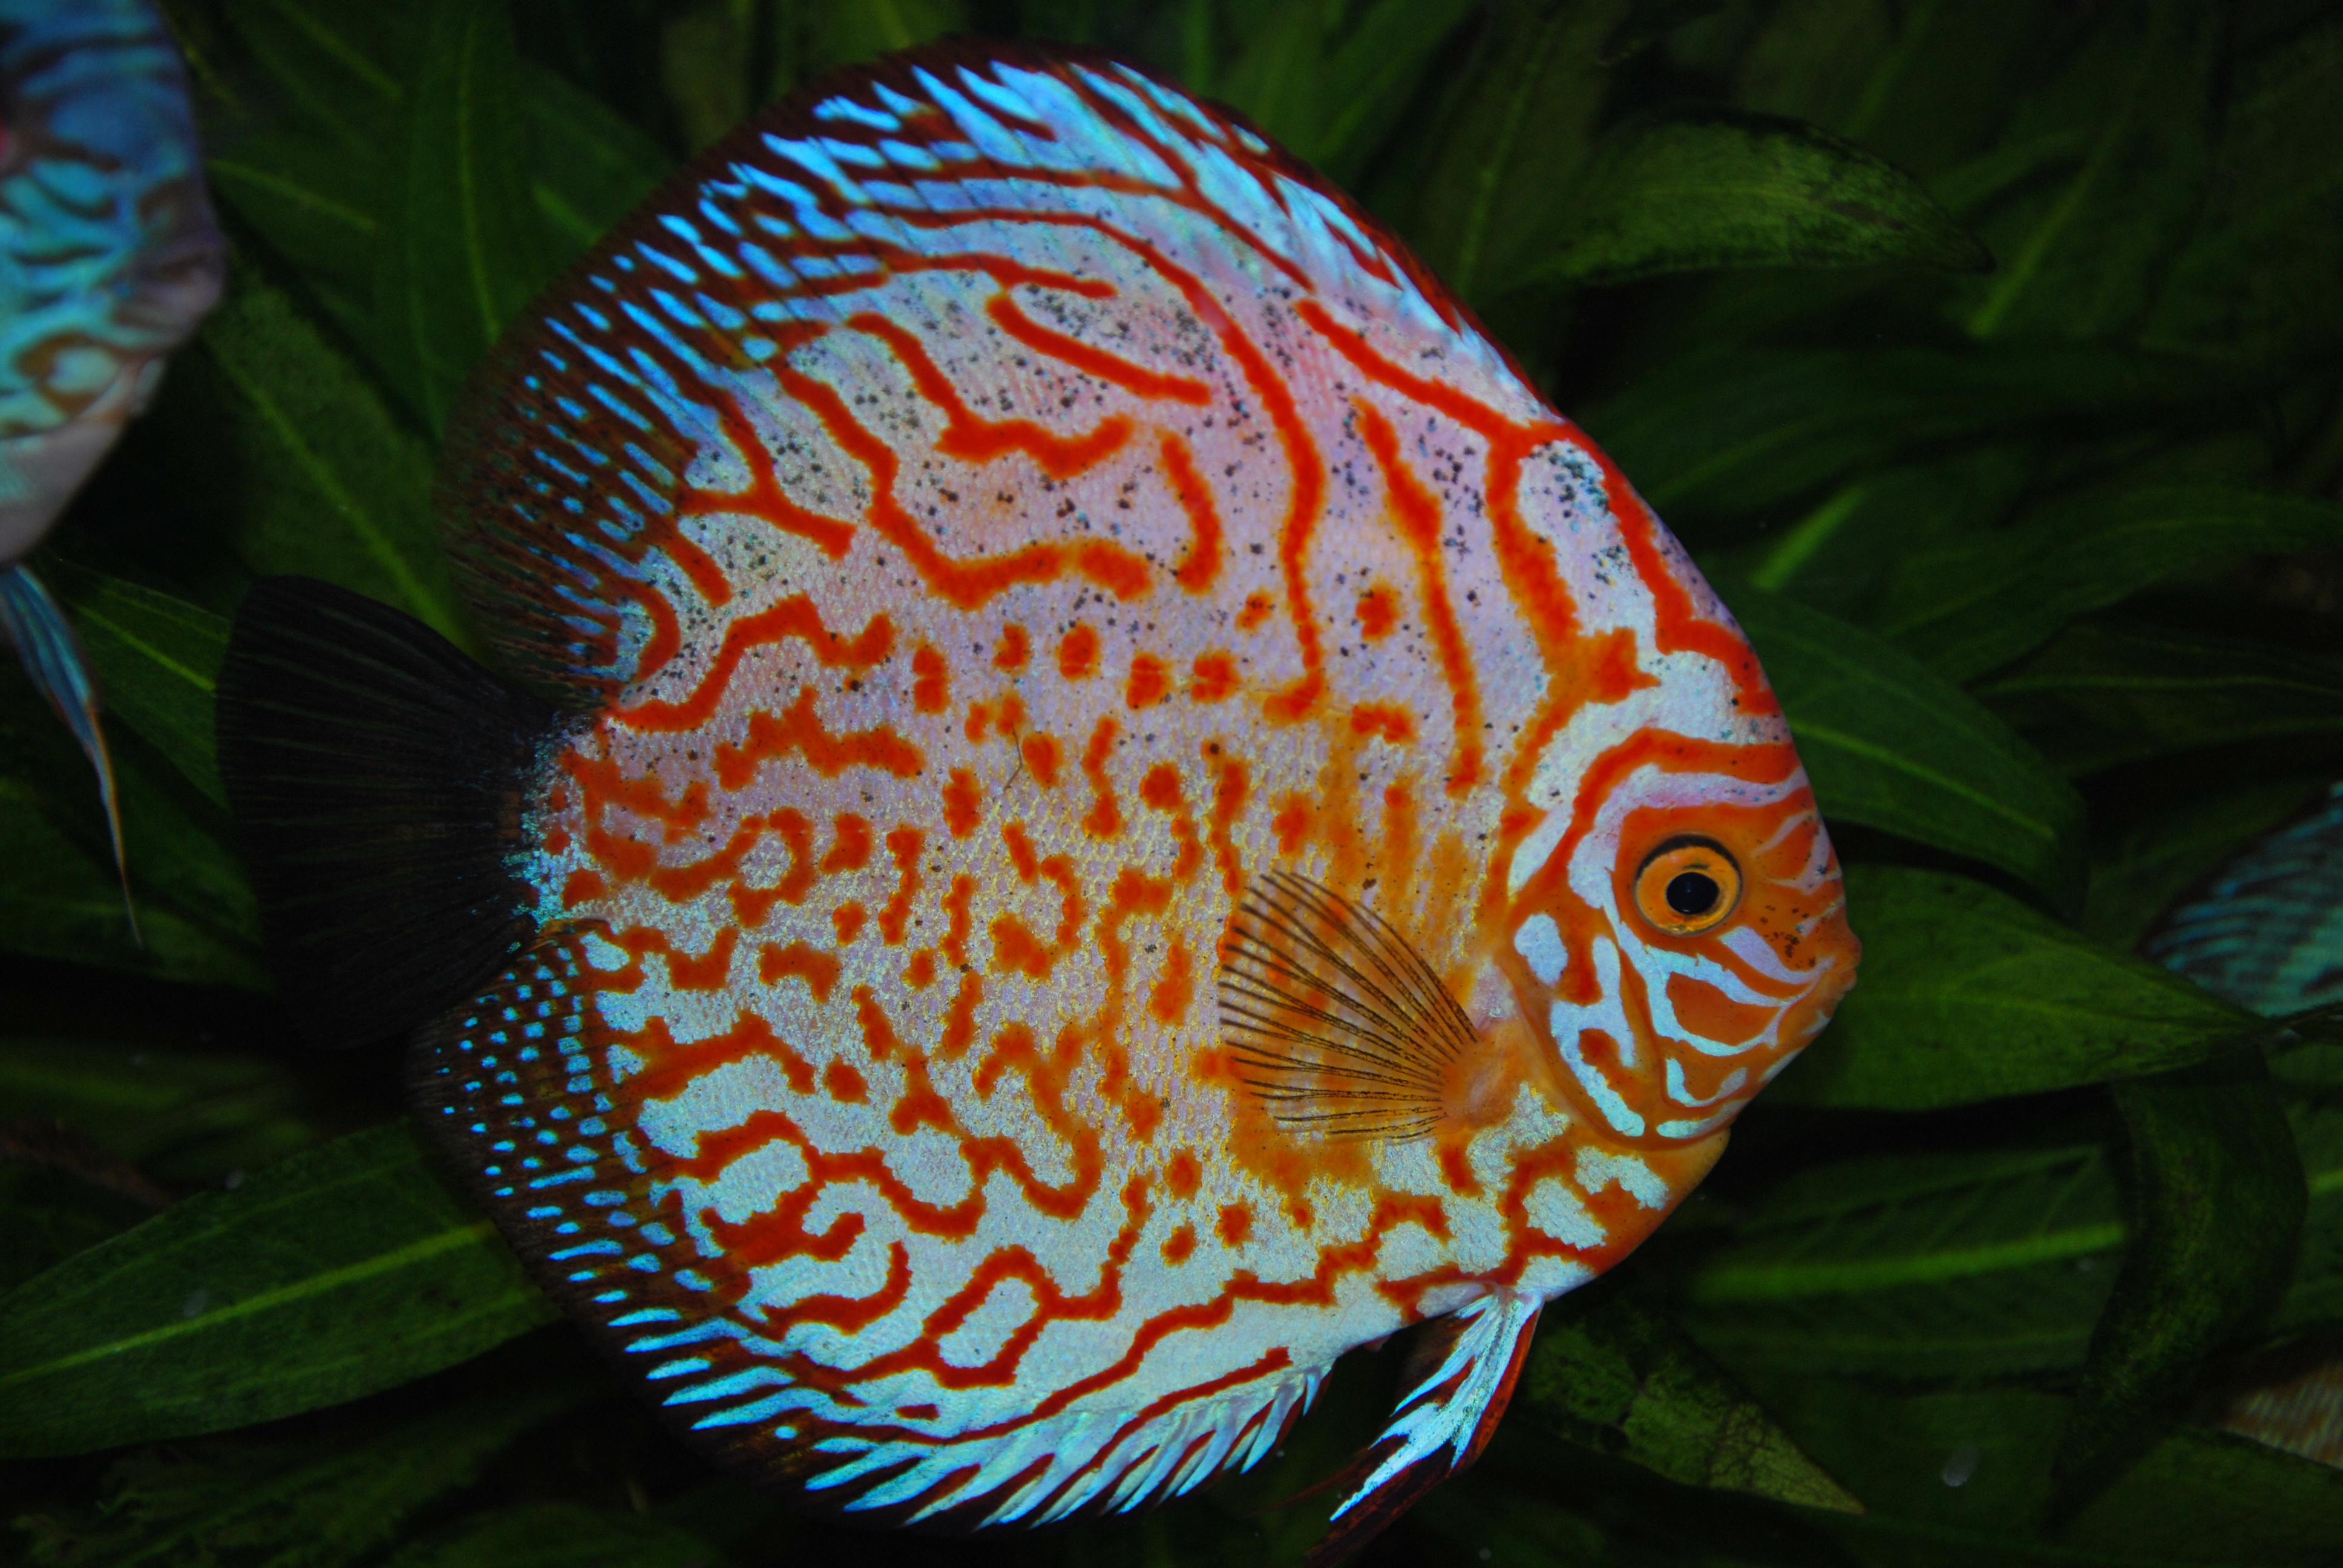 Discus Fish My discus fish by skippypiet